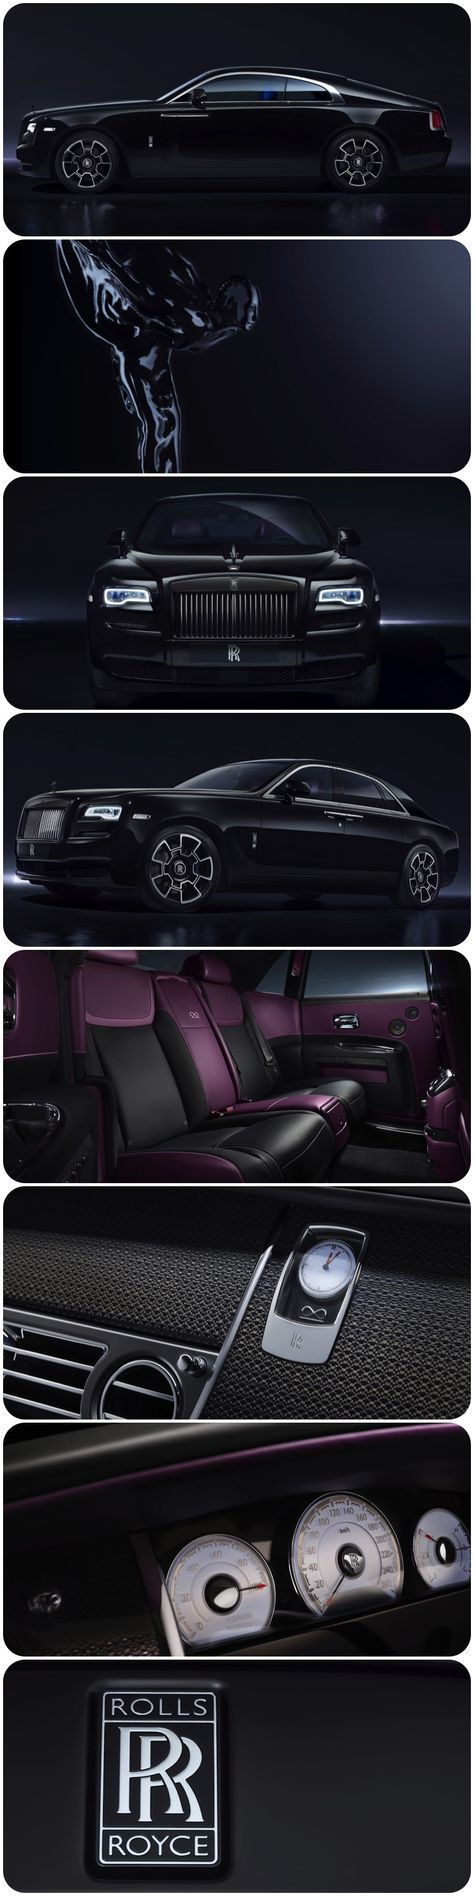 Black Badge - A New Rolls-Royce for the elusive, defiant people with attitude, the risk takers and disruptors who break the rules and laugh in the face of convention. Rolls-Royce Motor Cars #luxury #luxurybrands #blackbadge